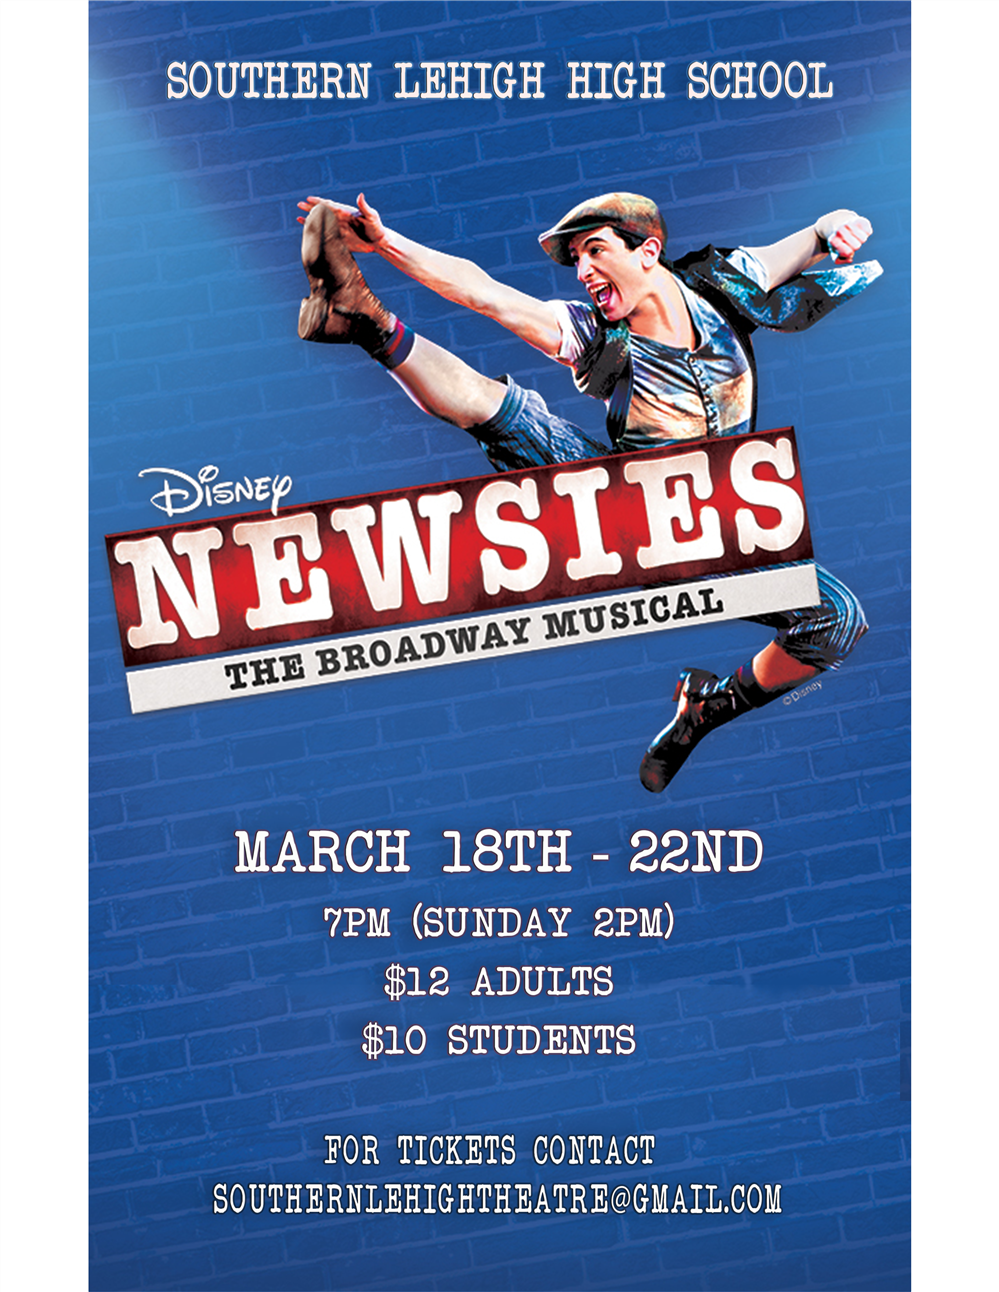 SLHS Newsies Poster